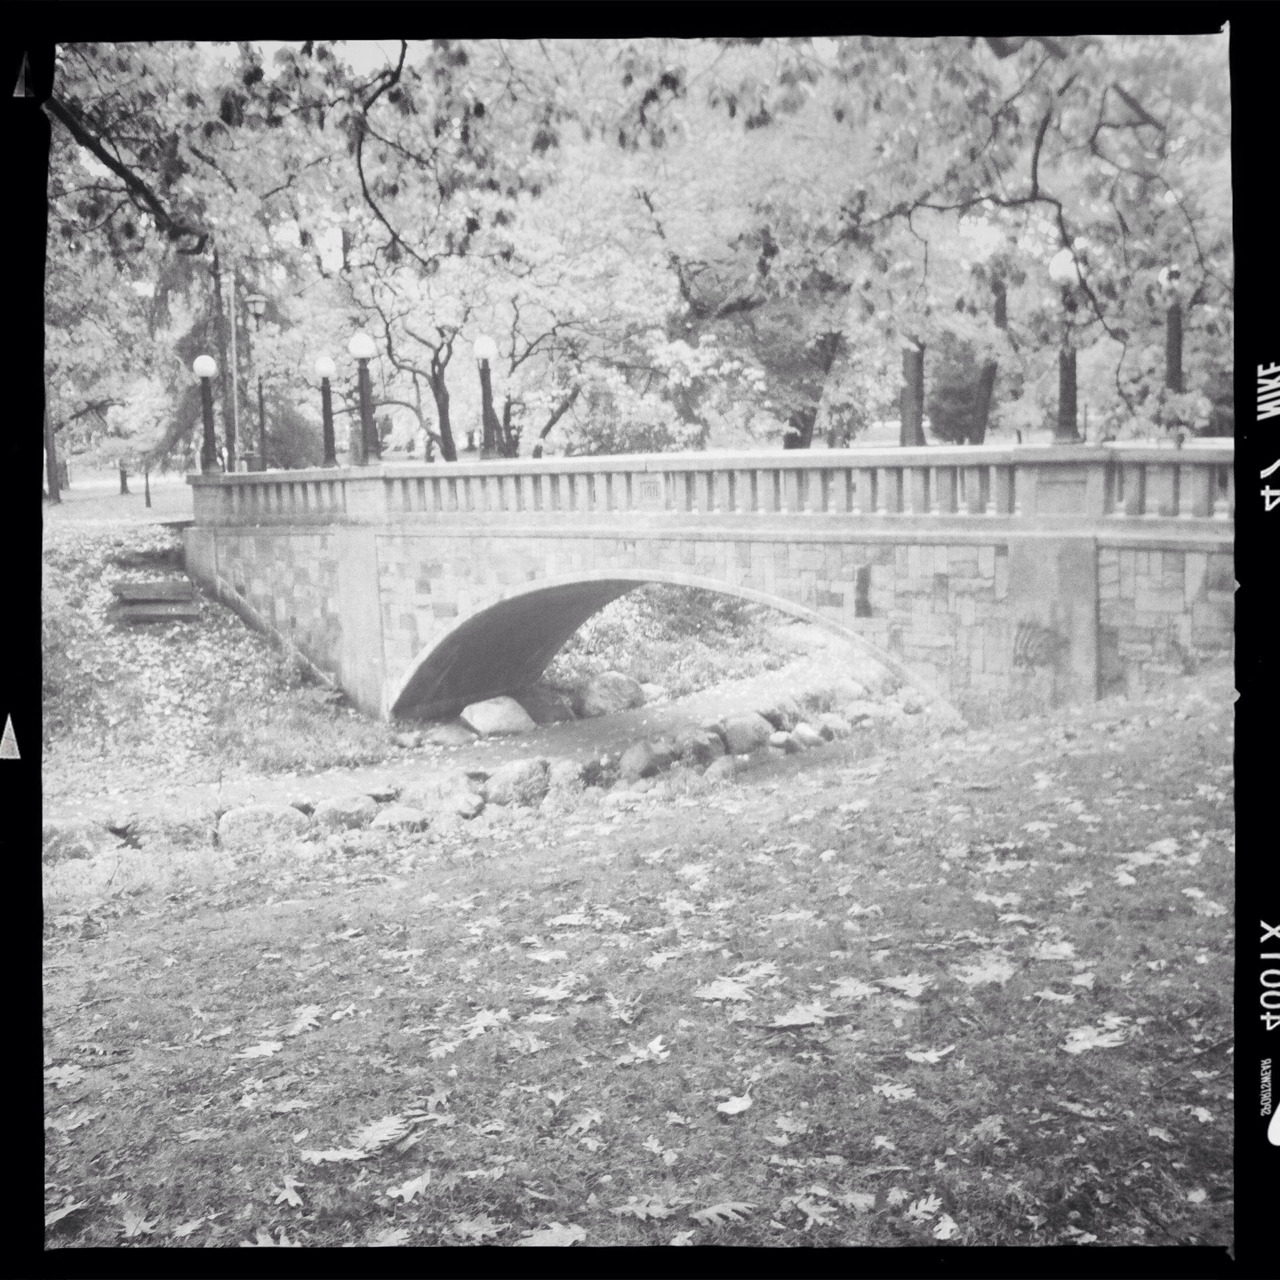 Deering Oaks Park bridge on a fall day